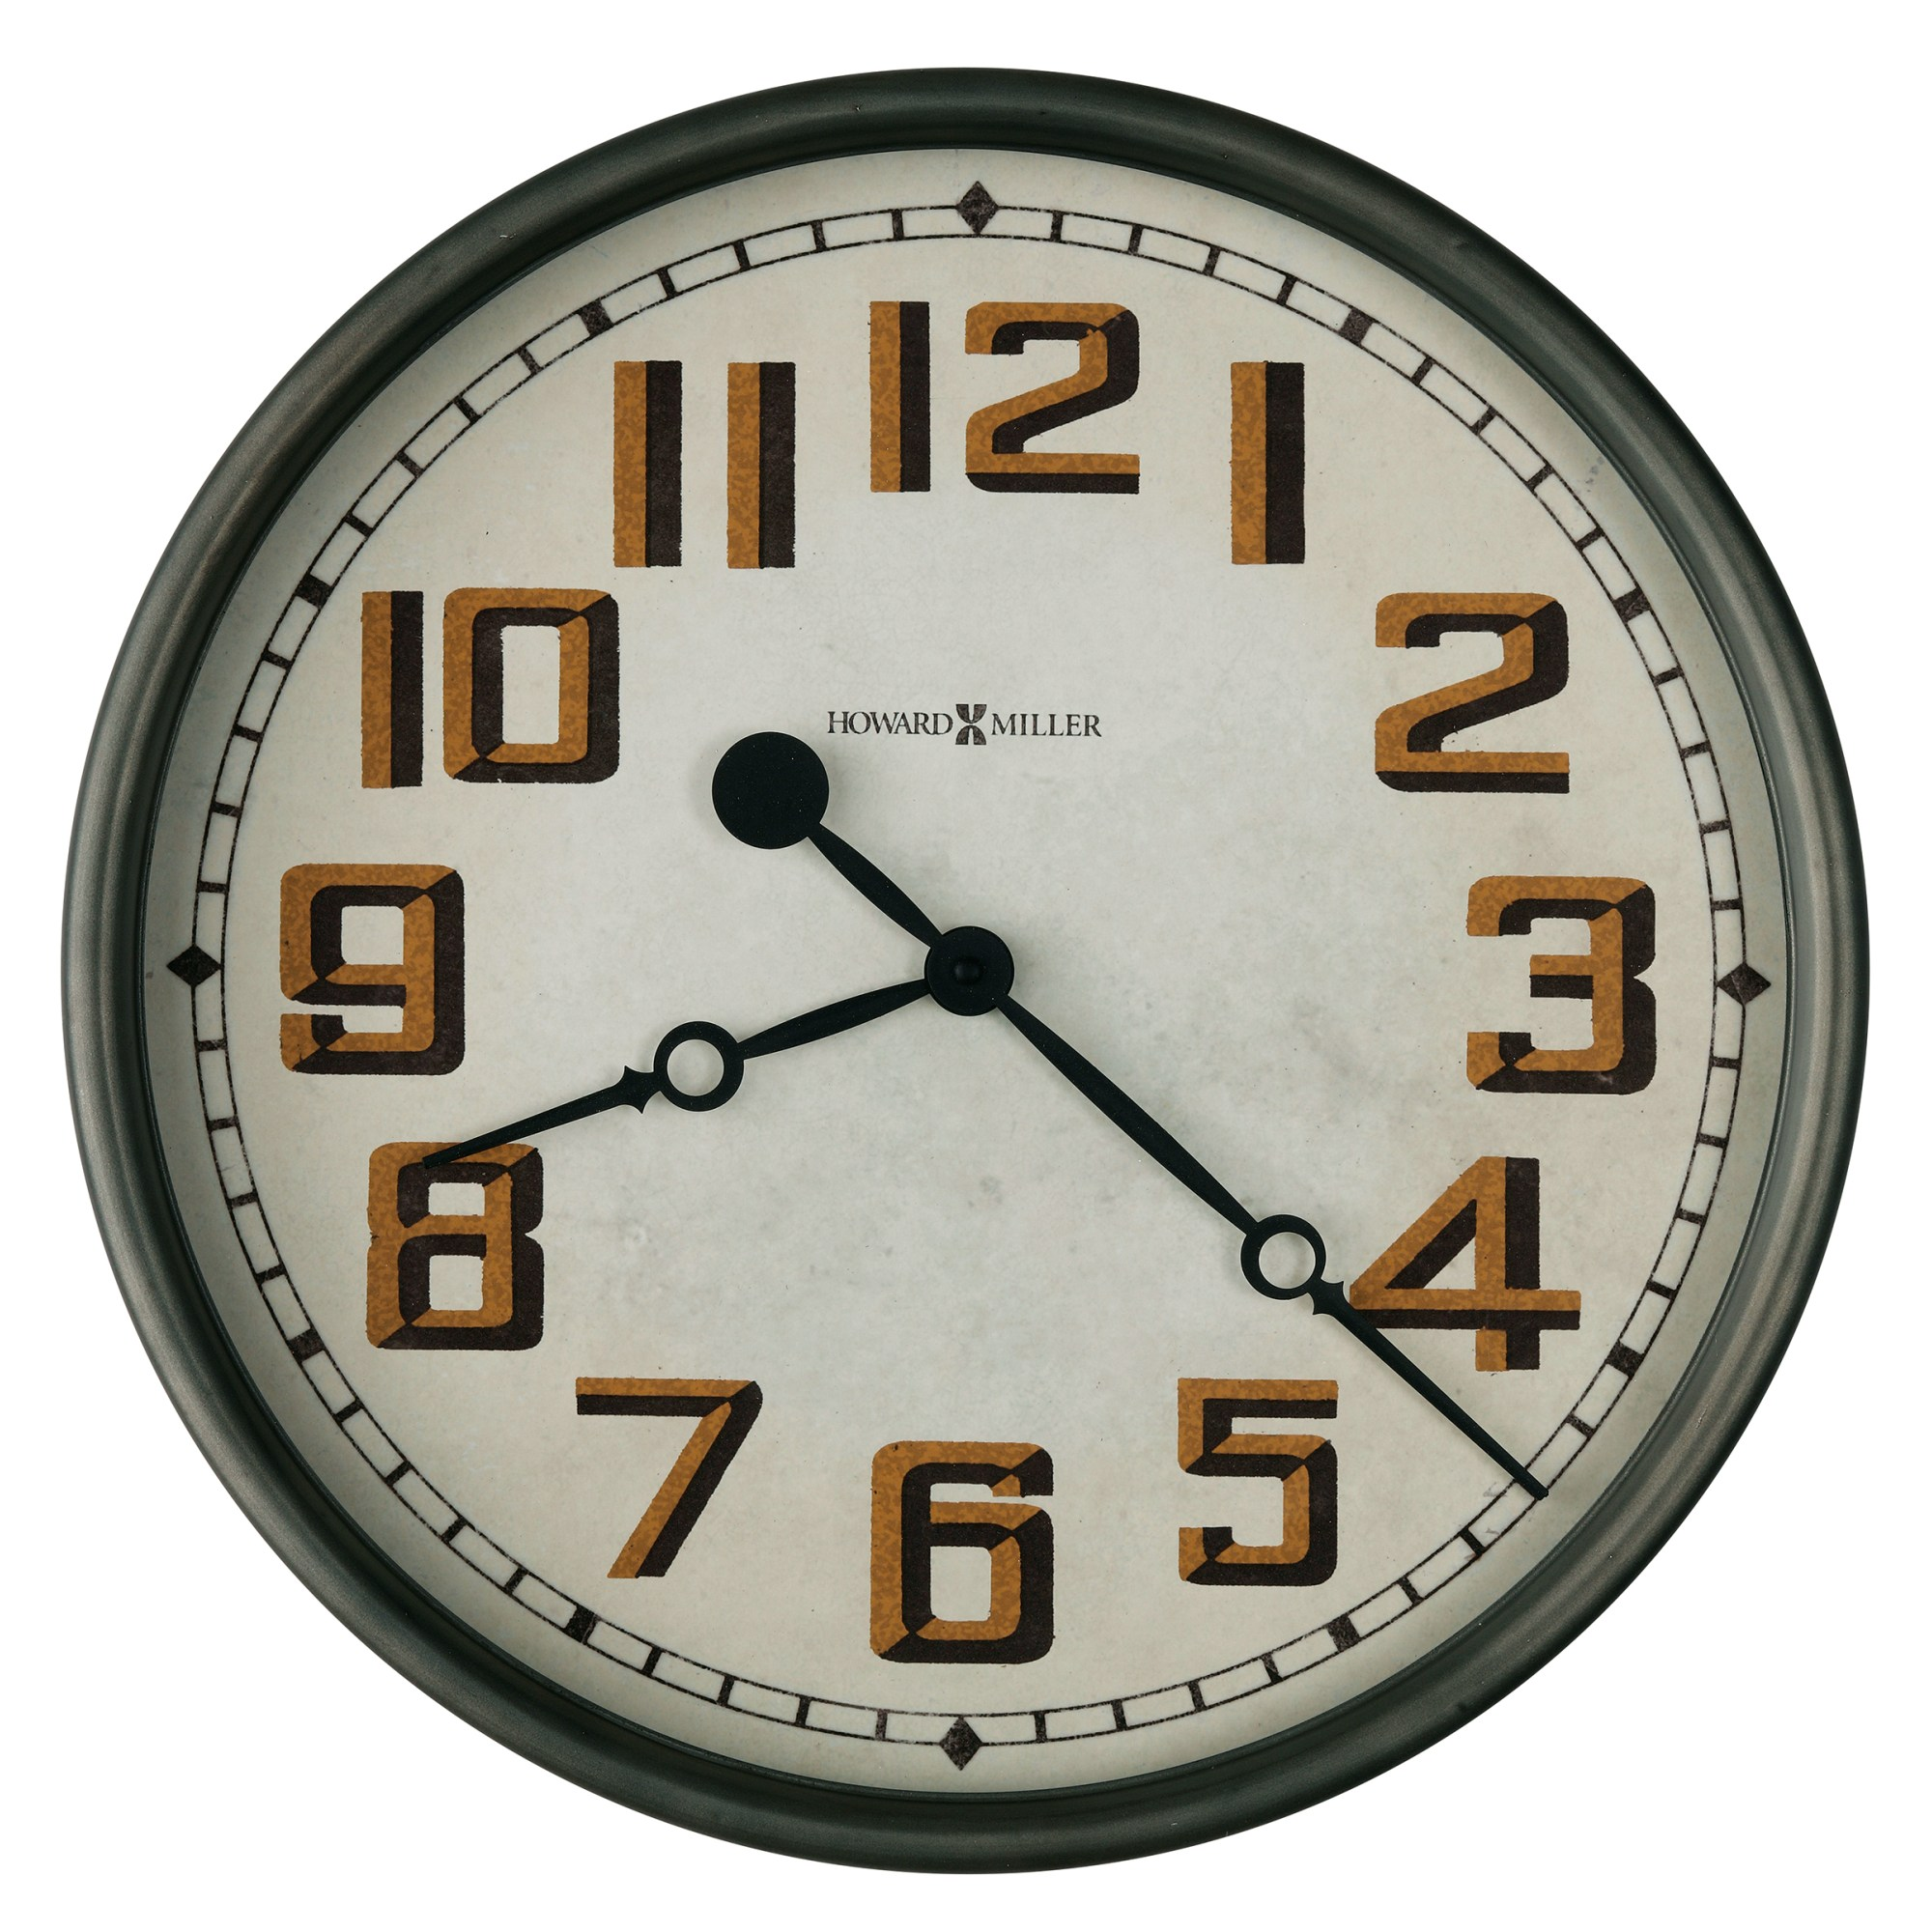 Image for 625-715 Hewitt Gallery Wall Clock from Howard Miller Official Website